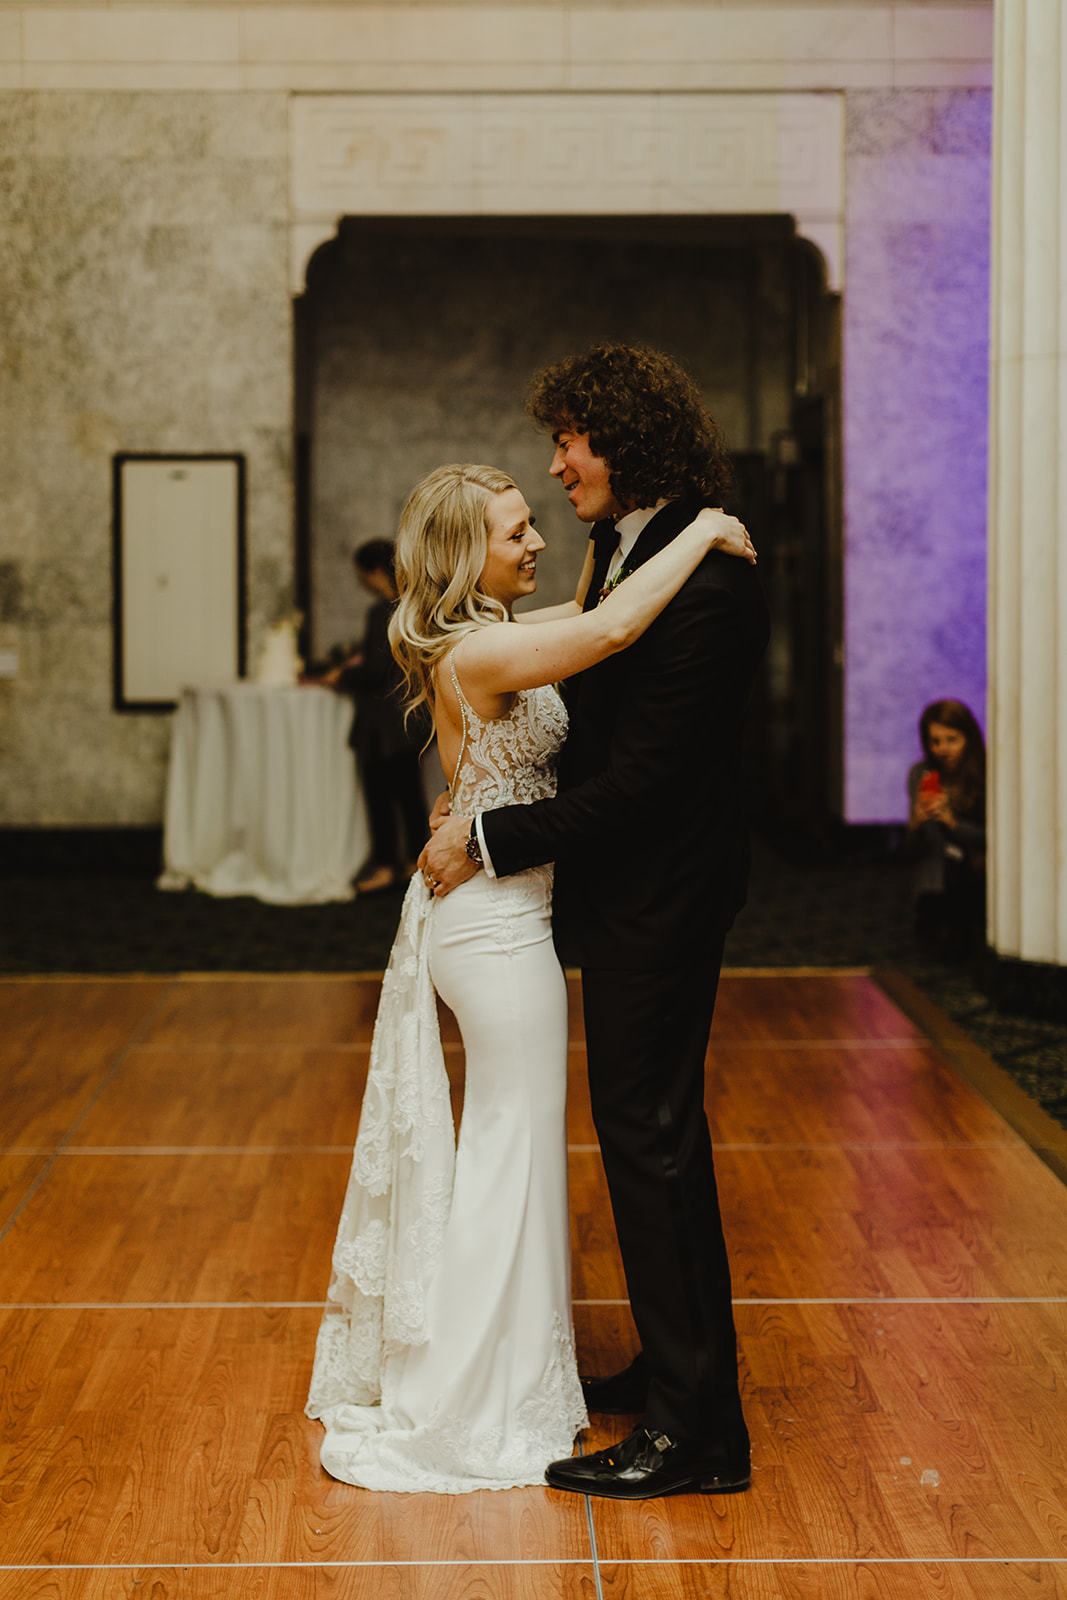 A couple smiling and dancing on their wedding day